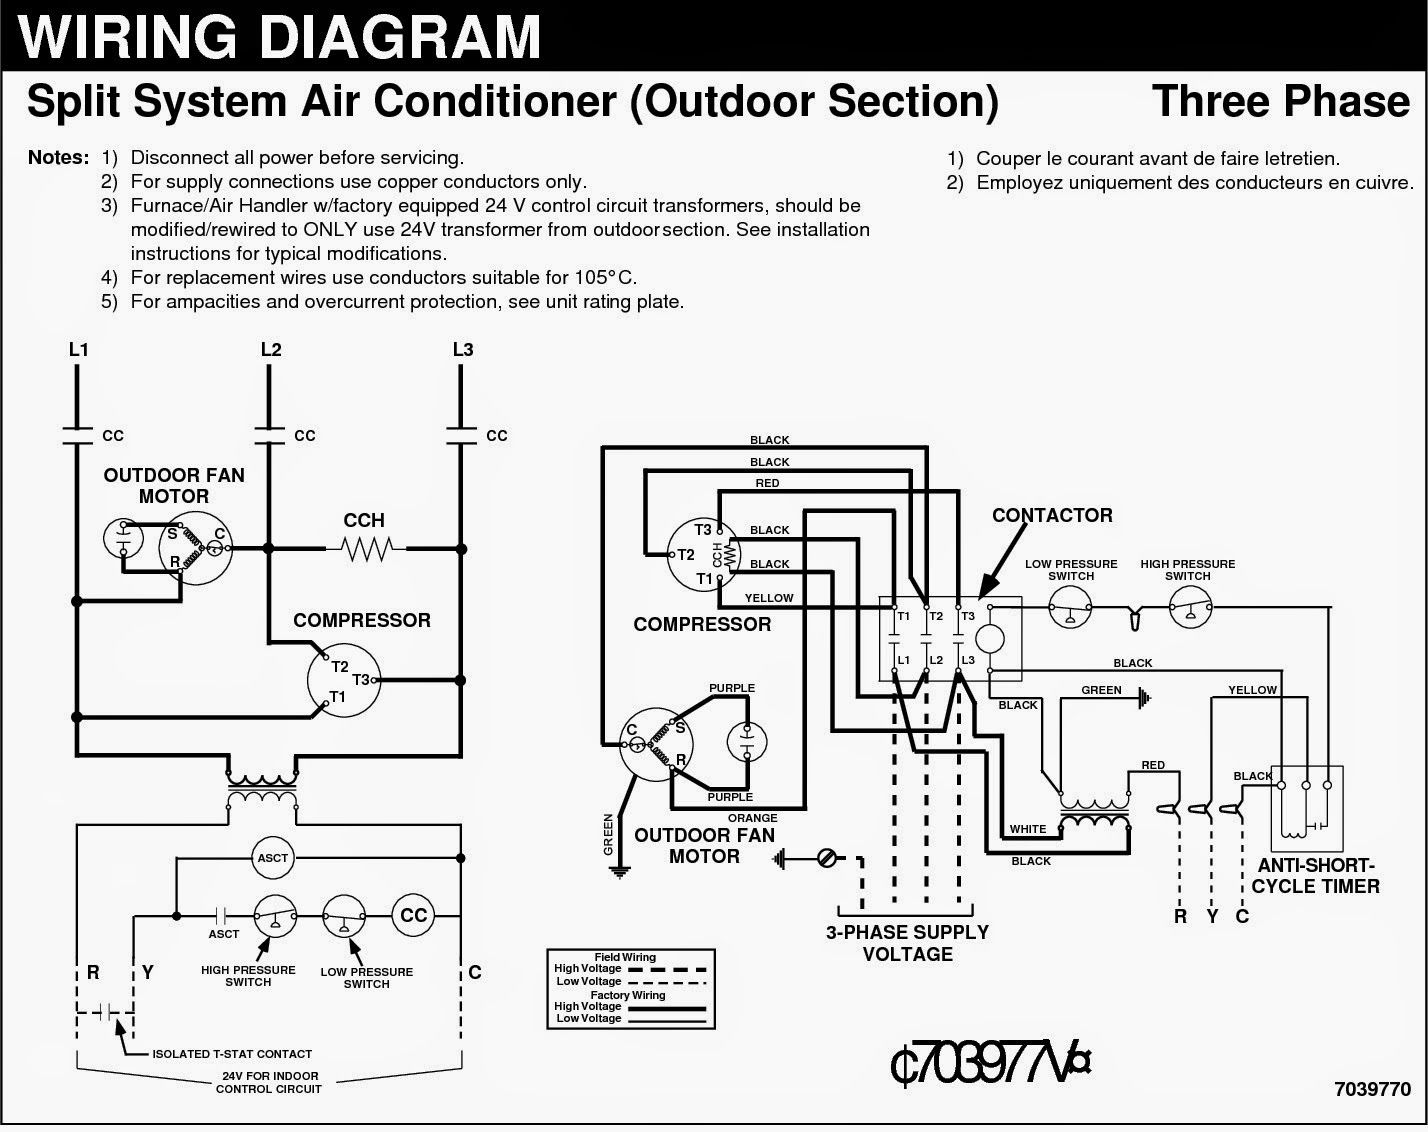 electrical wiring diagrams for air conditioning systems \u2013 part twoelectrical wiring diagrams for air conditioning systems \u2013 part two ~ electrical knowhow